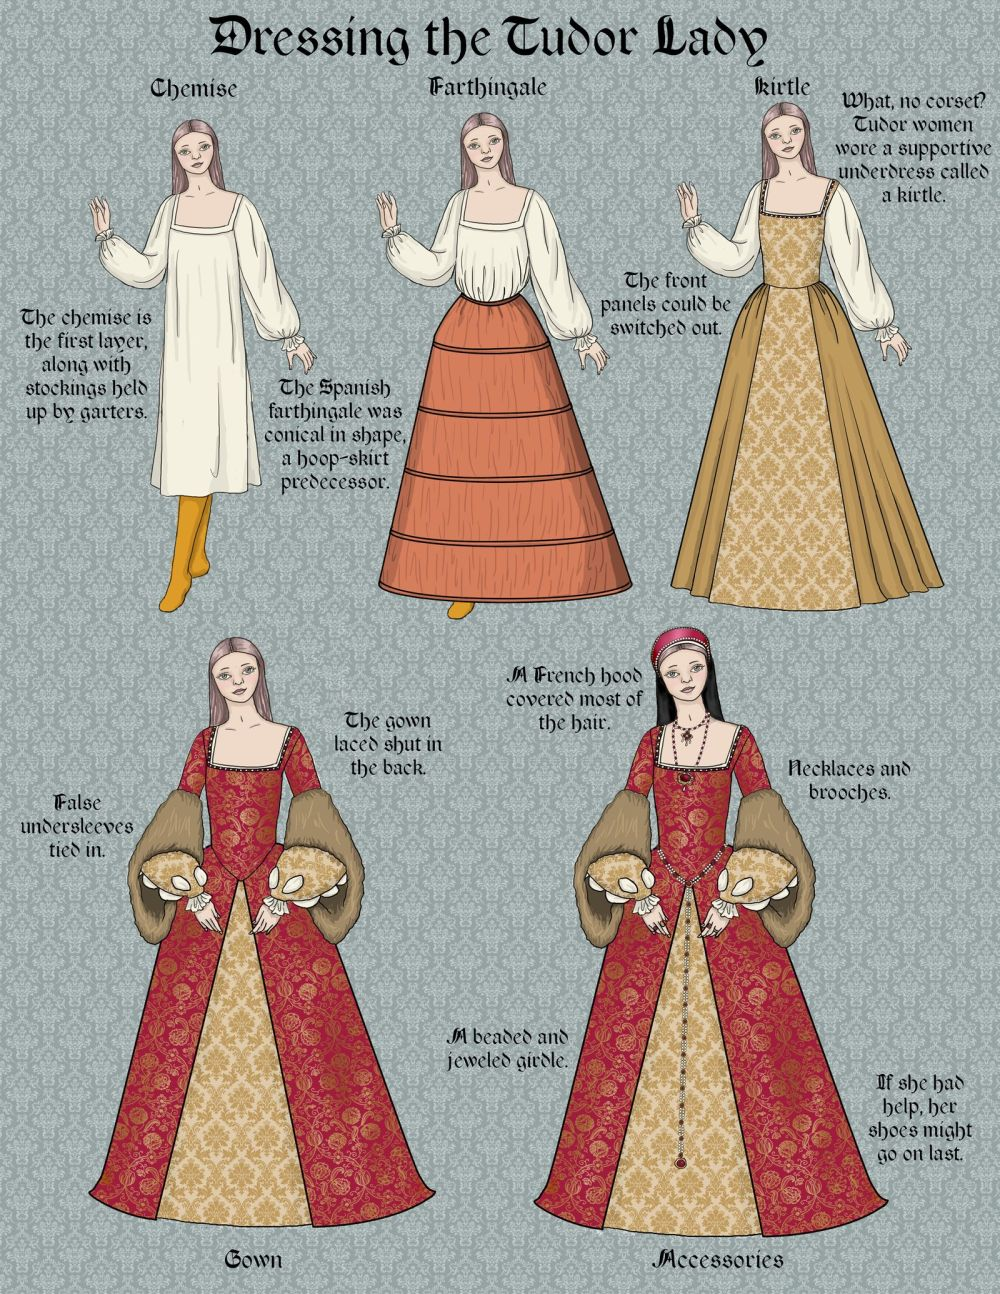 dressing_the_tudor_lady_by_taylor_of_the_phunk_d89yifi-fullview (1)